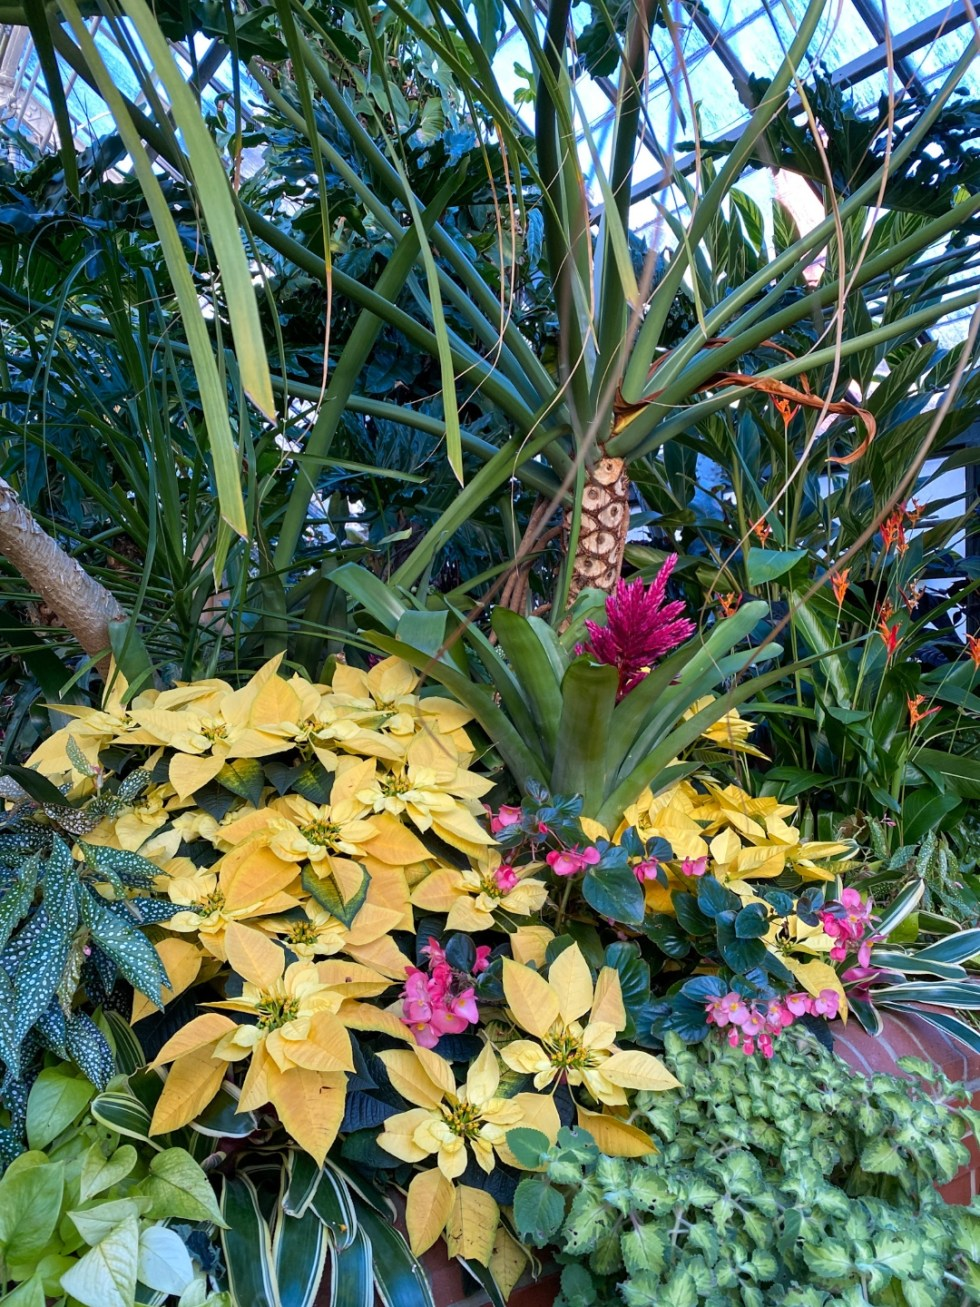 Christmas in Asheville: a Weekend Getaway During the Holidays - I'm Fixin' To - @imfixintoblog |Christmas in Asheville NC by popular NC lifestyle blog, I'm Fixin' To: image of tropical plants inside a greenhouse.